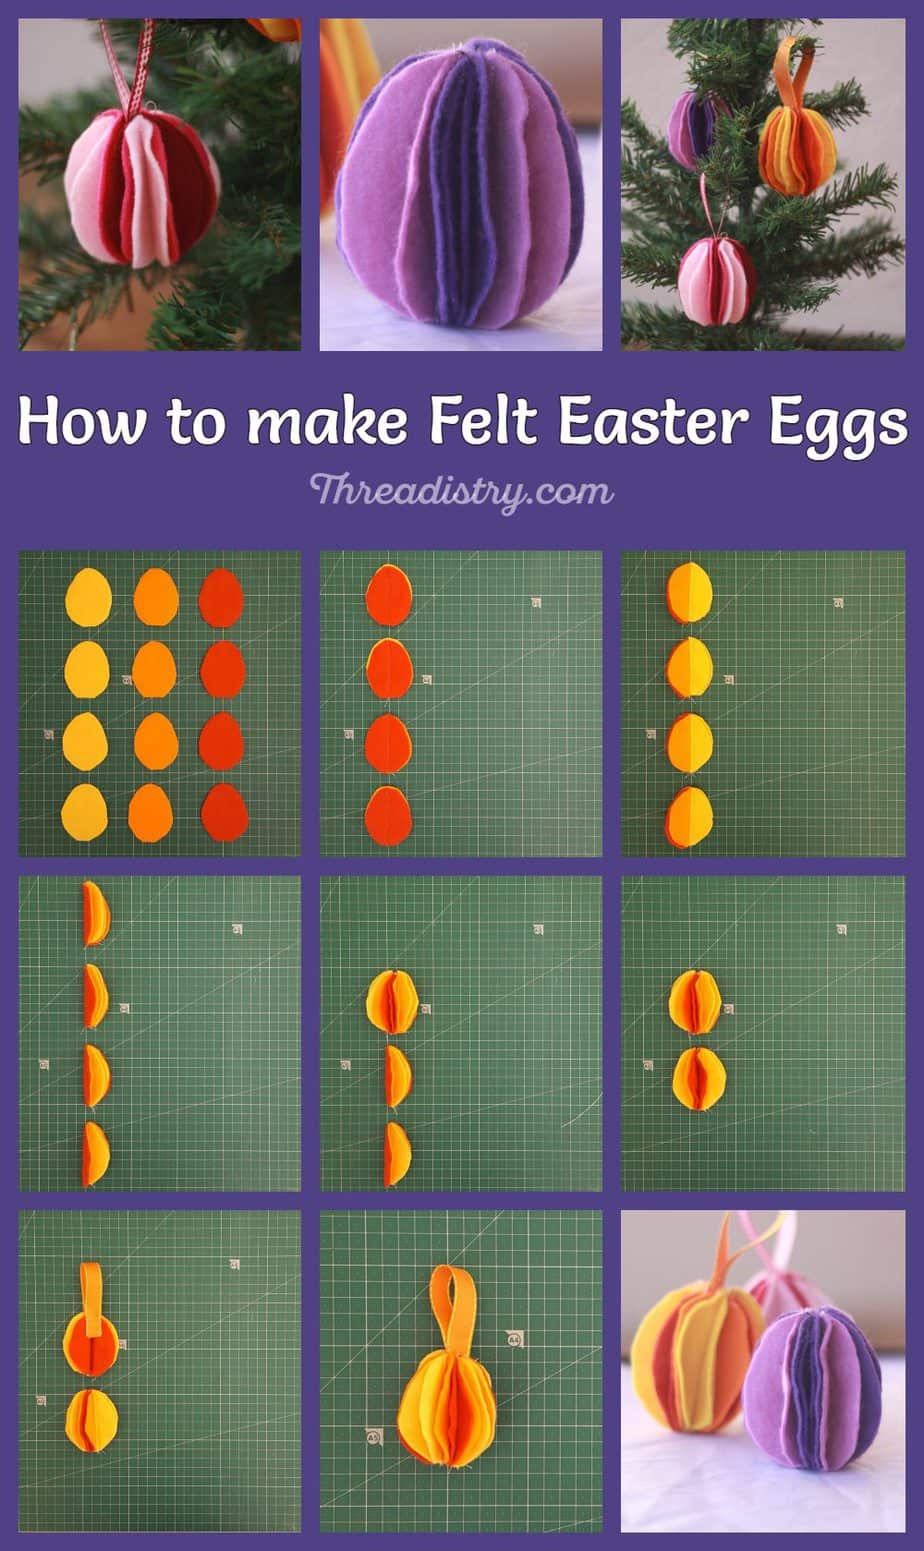 How to make felt Easter eggs. Click through for this fun and cute sewing tutorial for Easter decorating.